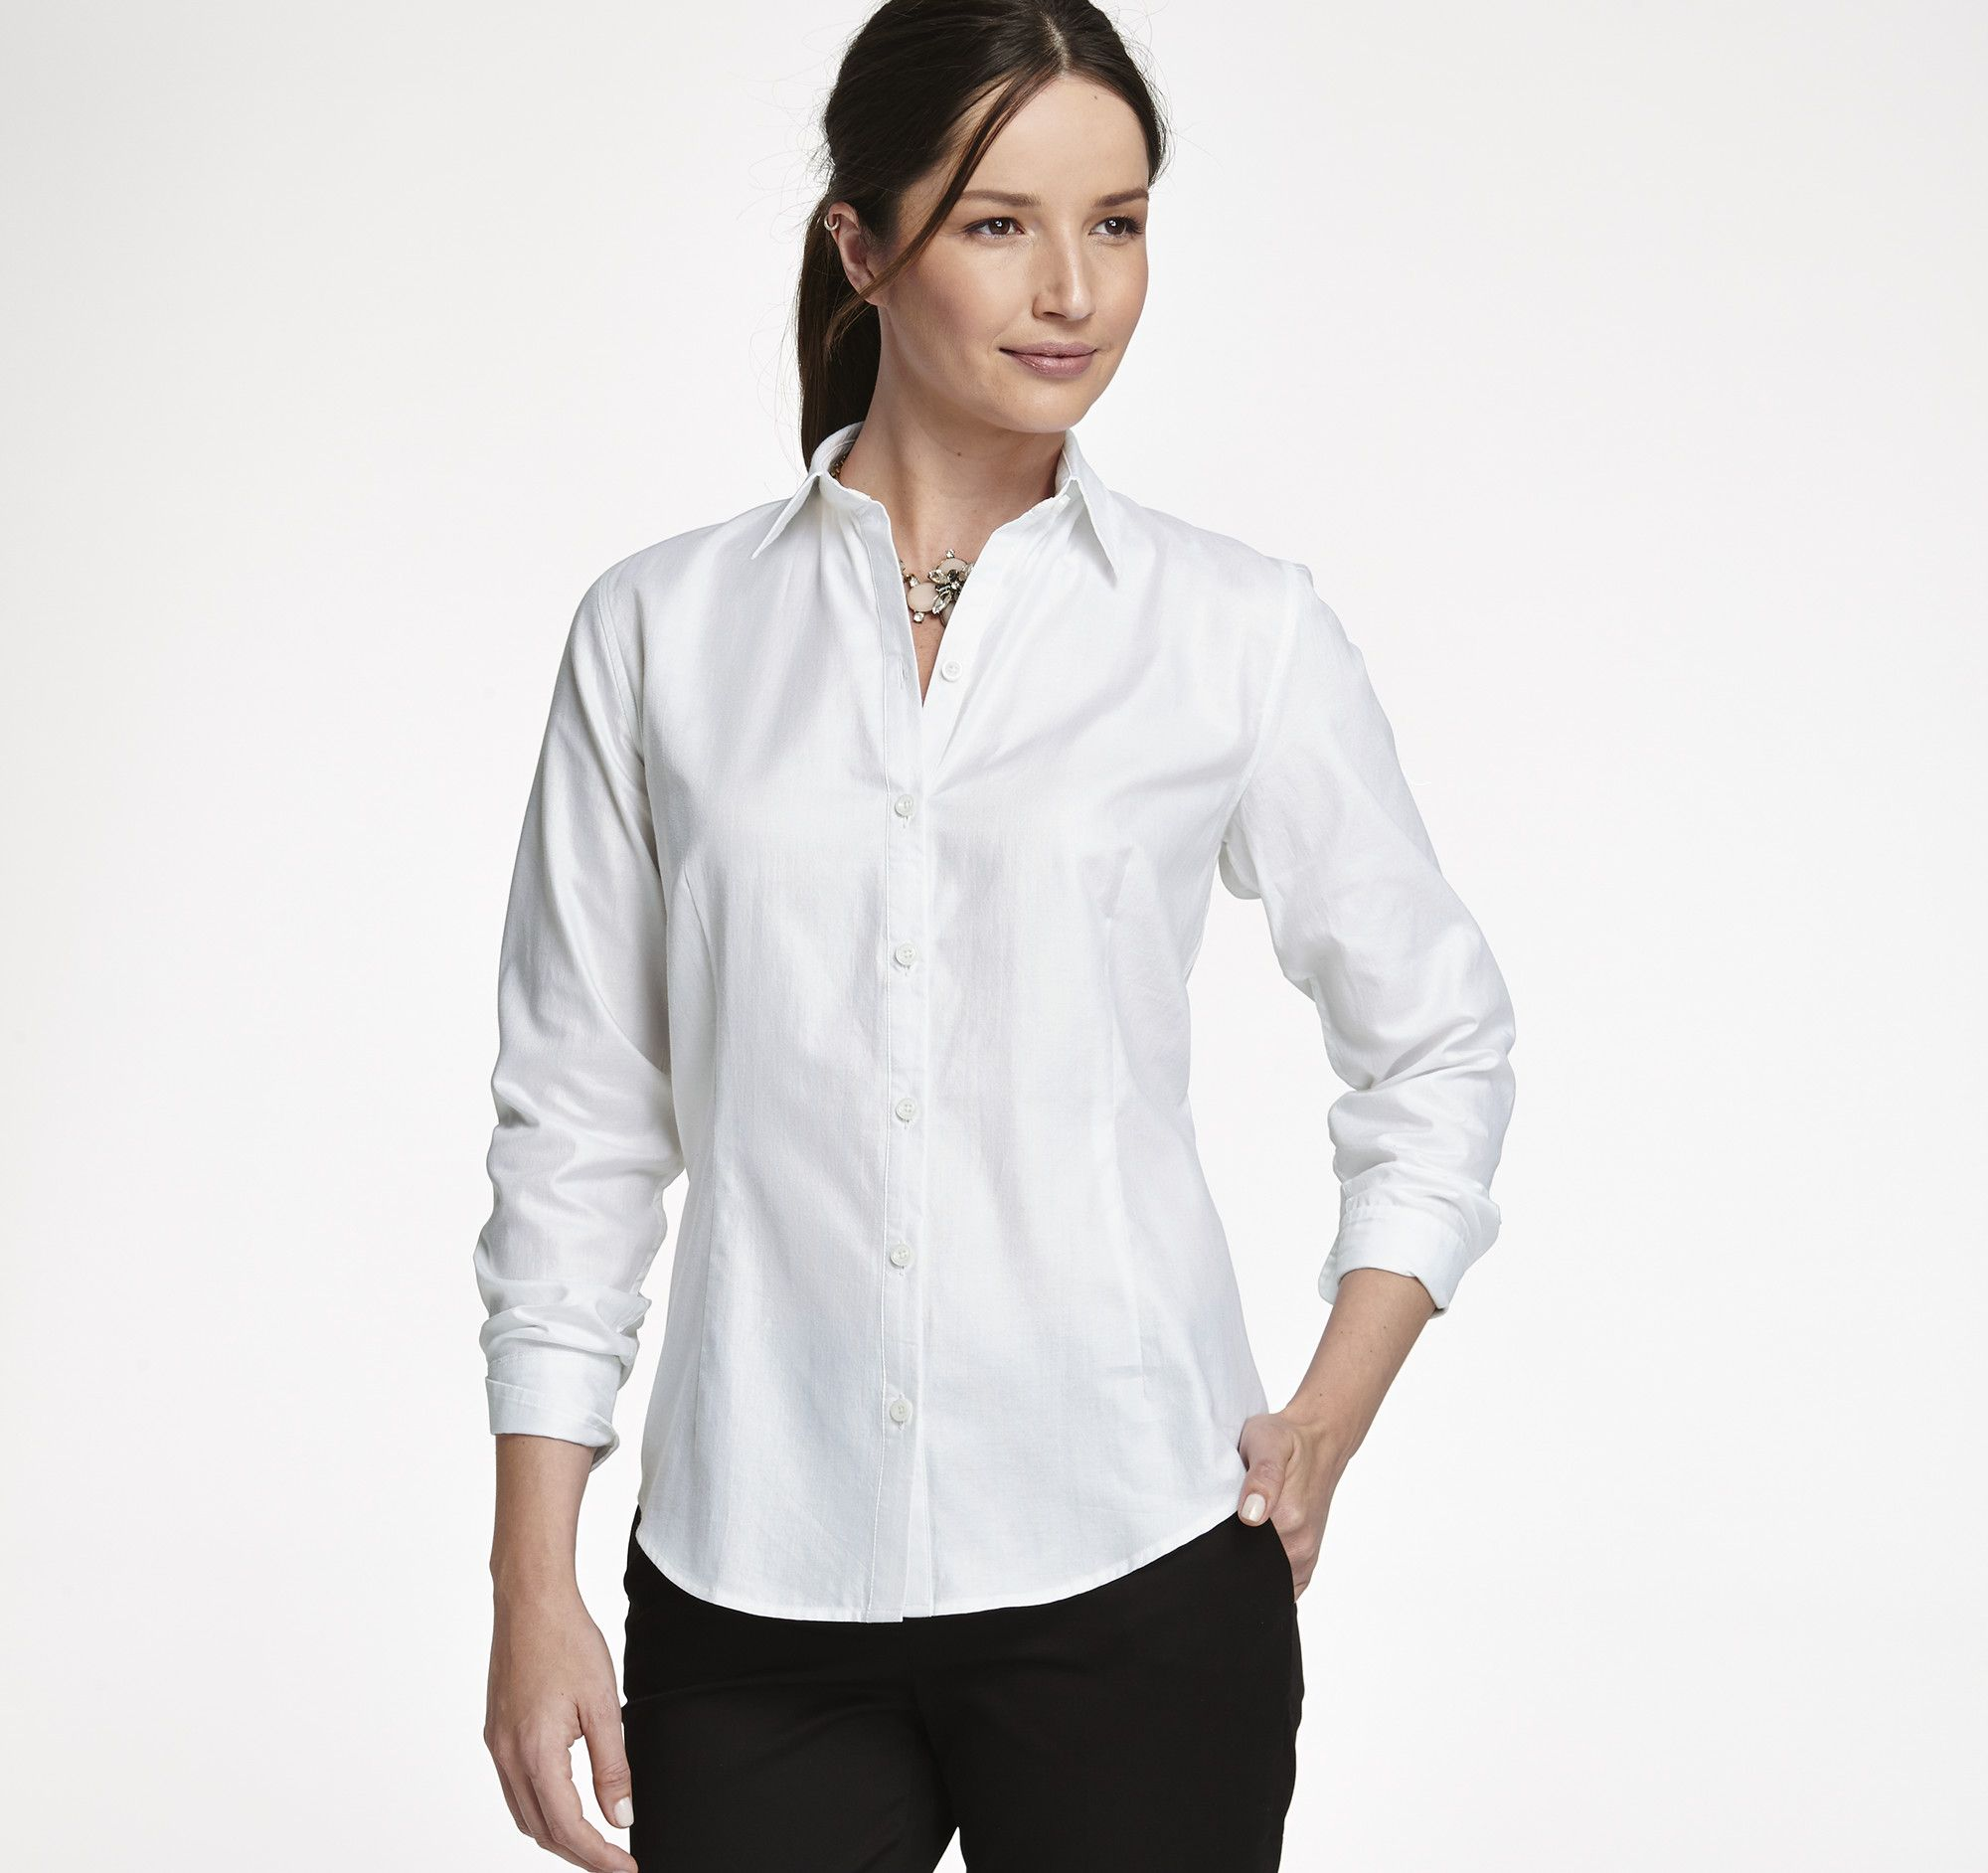 Oxford Shirt Johnston Murphy Clothing And Such